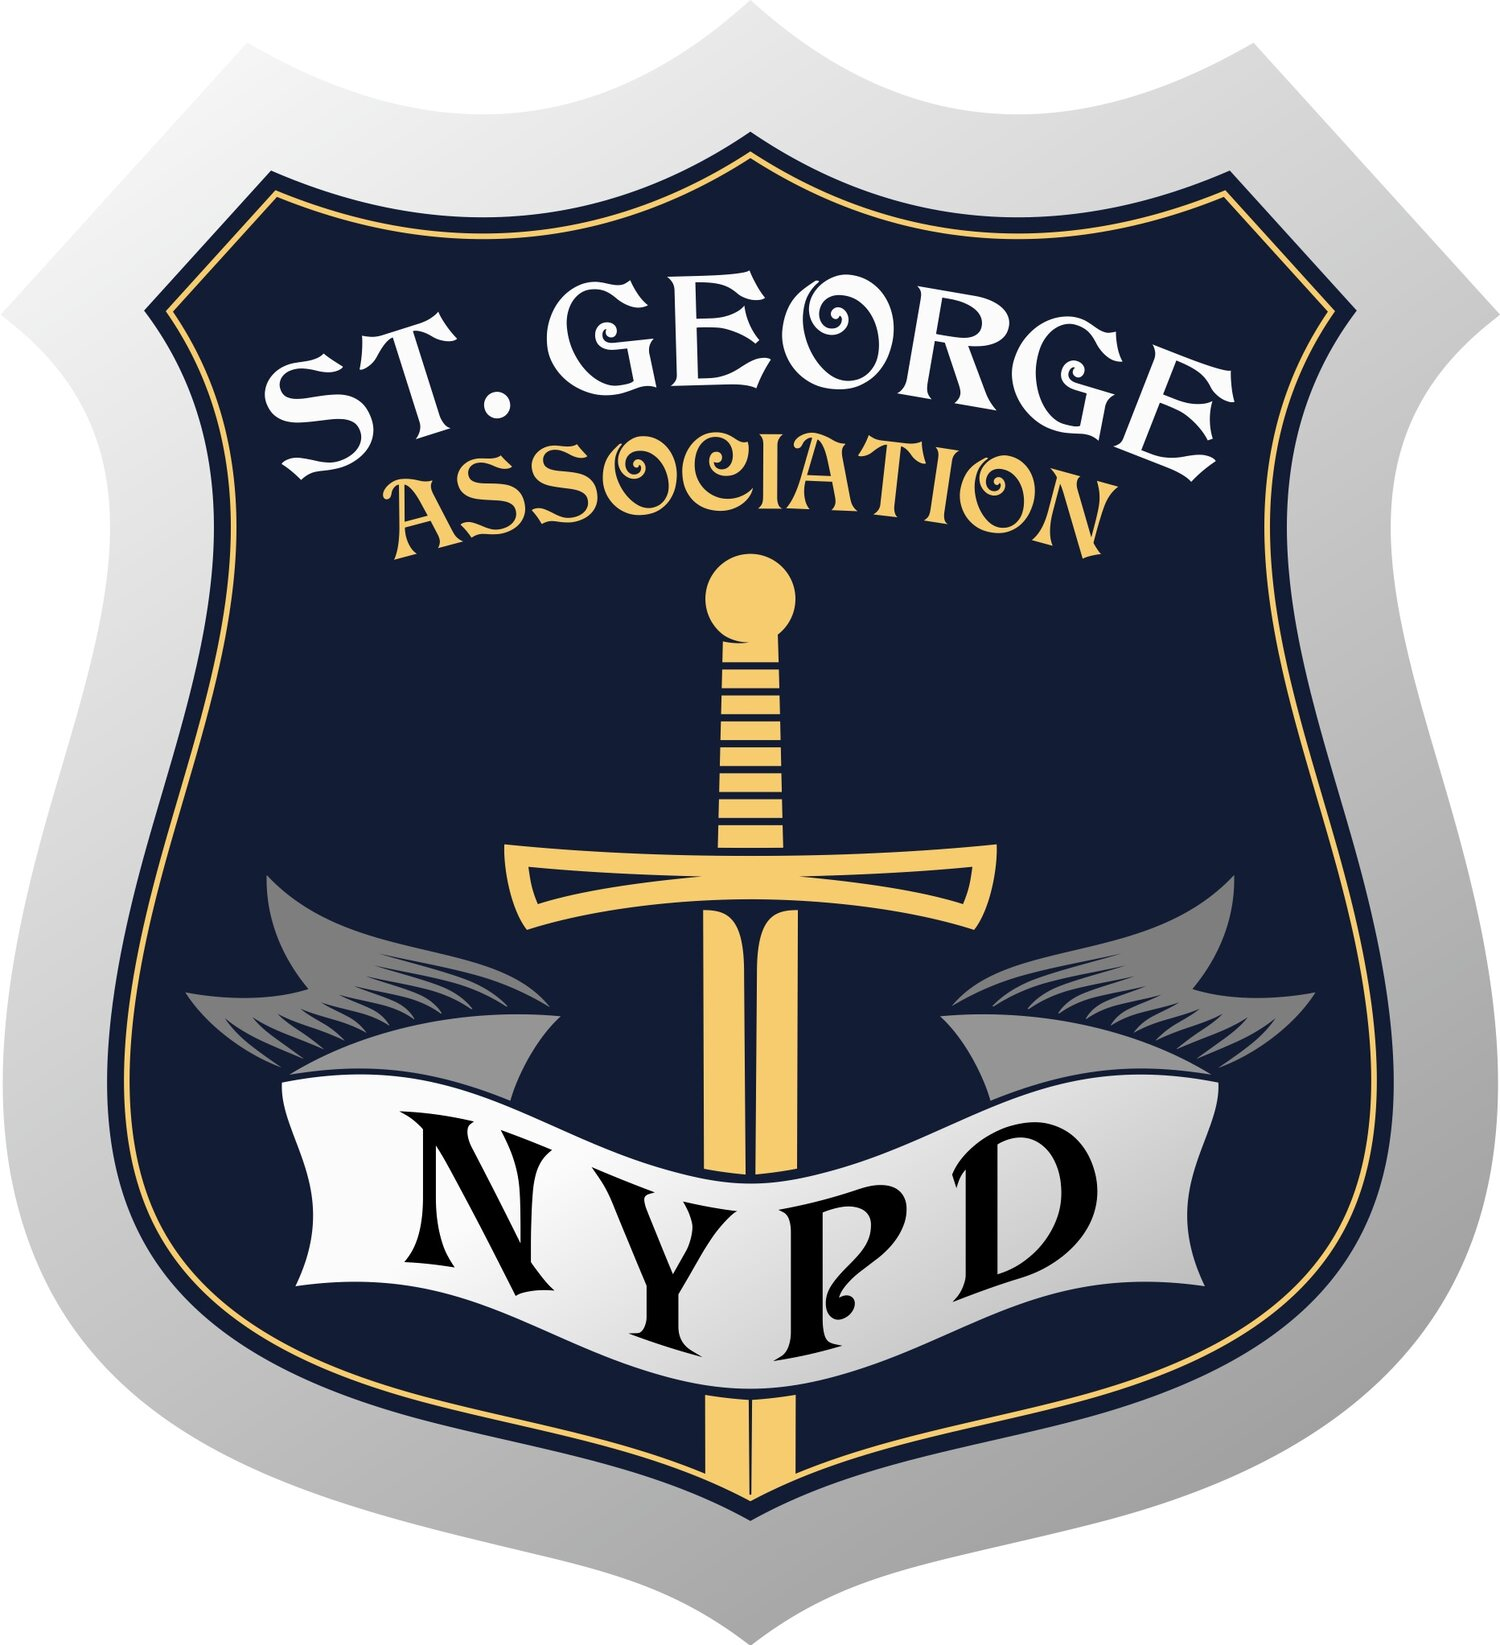 NYPD St. George Association